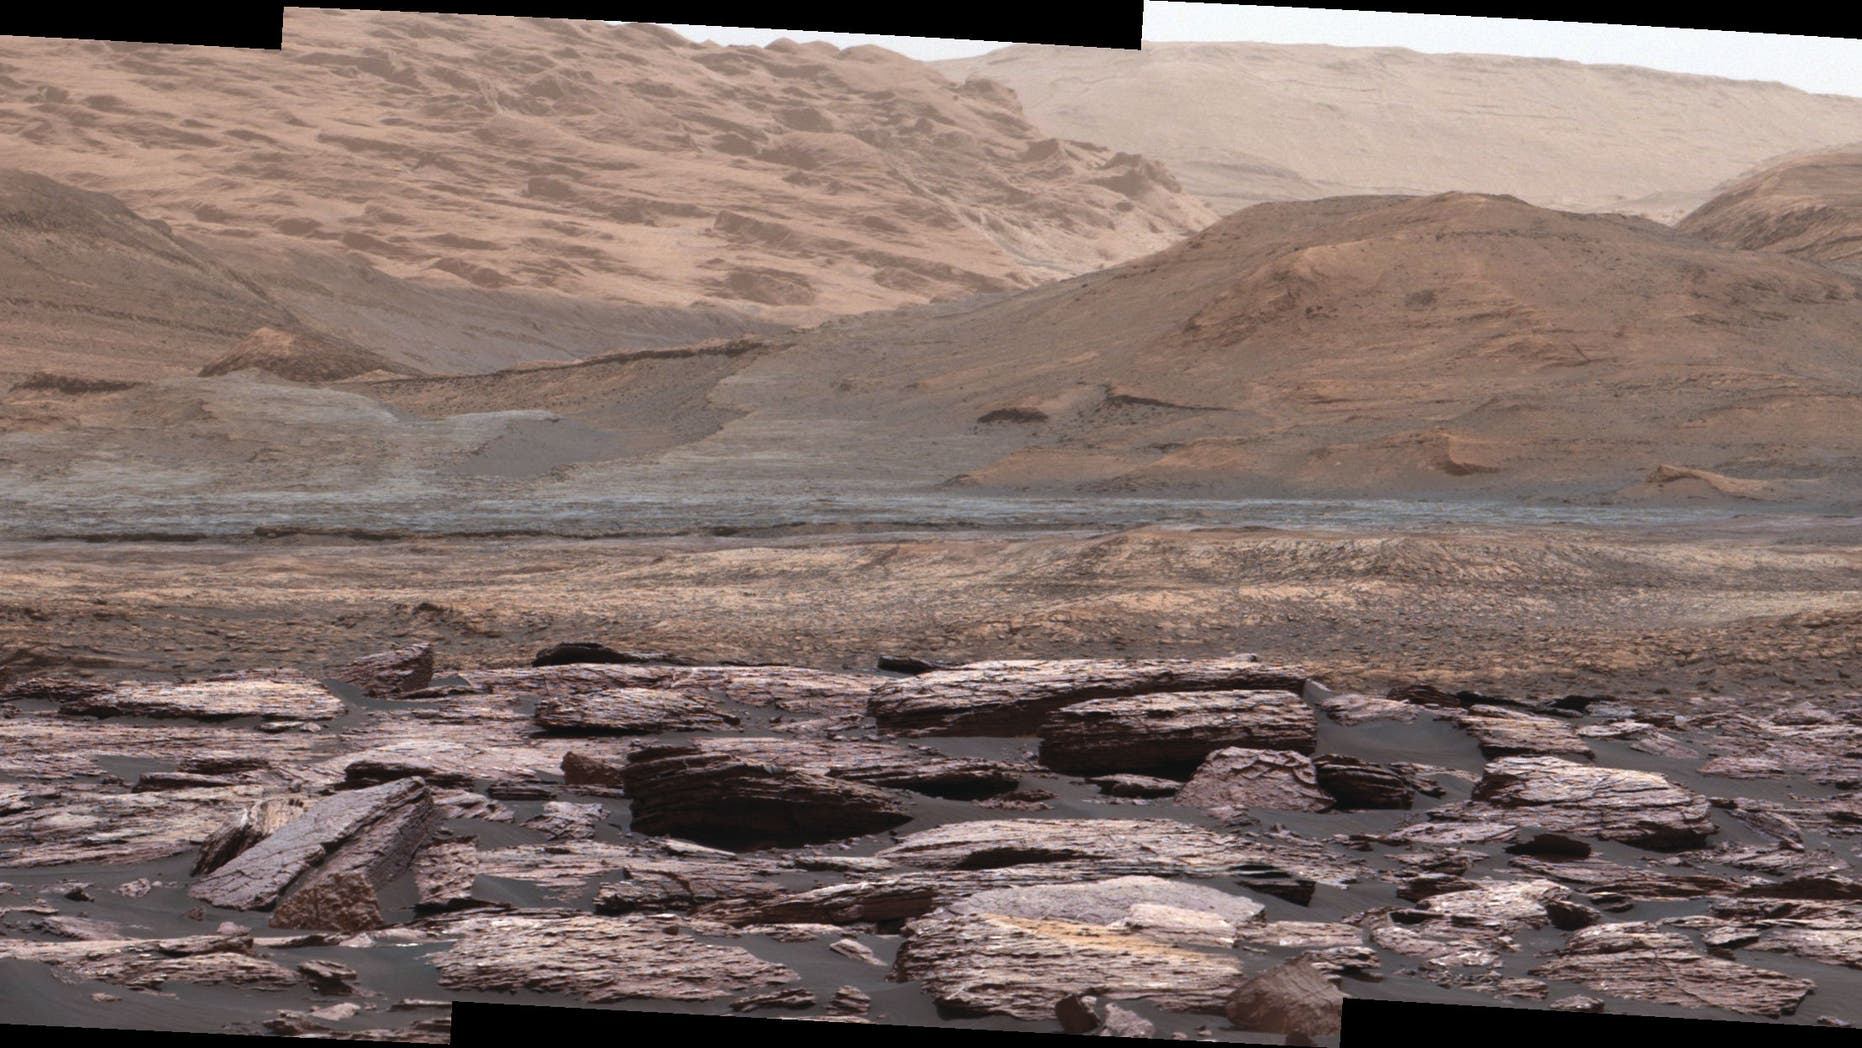 This new image from the Mars Curiosity rover captures purple-colored rocks on the surface of lower Mount Sharp. (Credit: NASA/JPL-Caltech/MSSS)